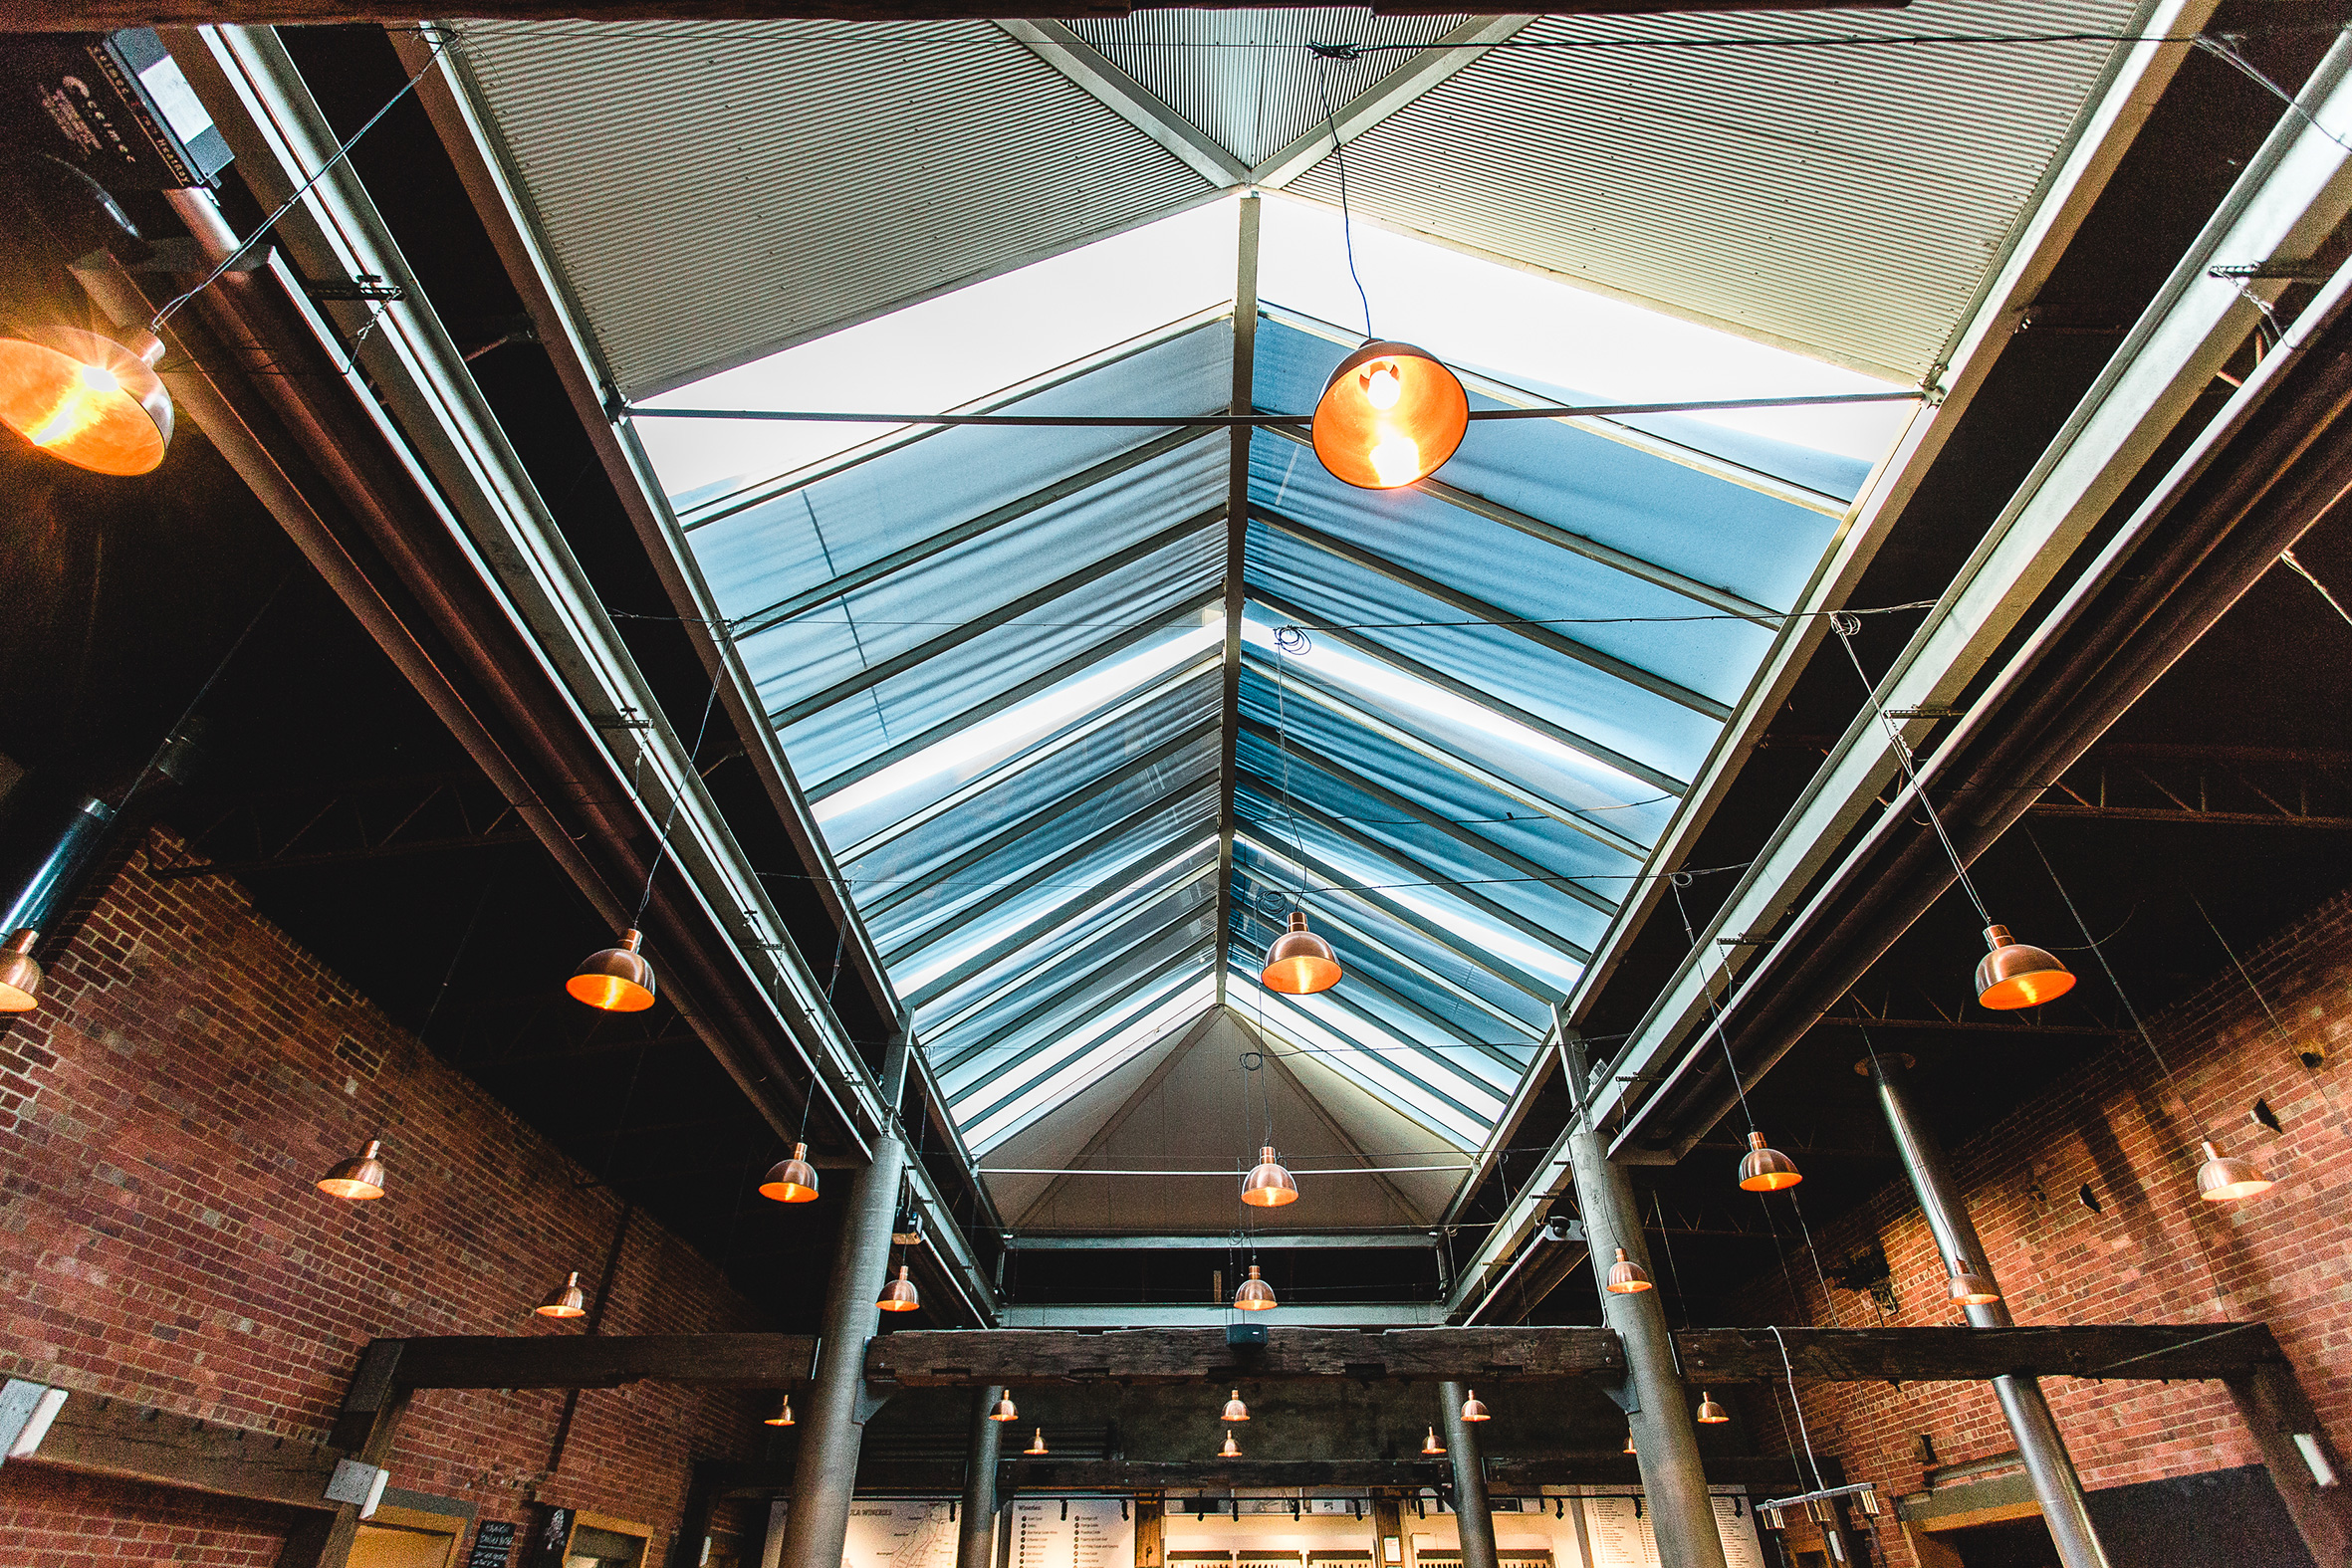 The-Epicurean_Atrium-Roof_Industrial_Packing-Shed_Features.jpg